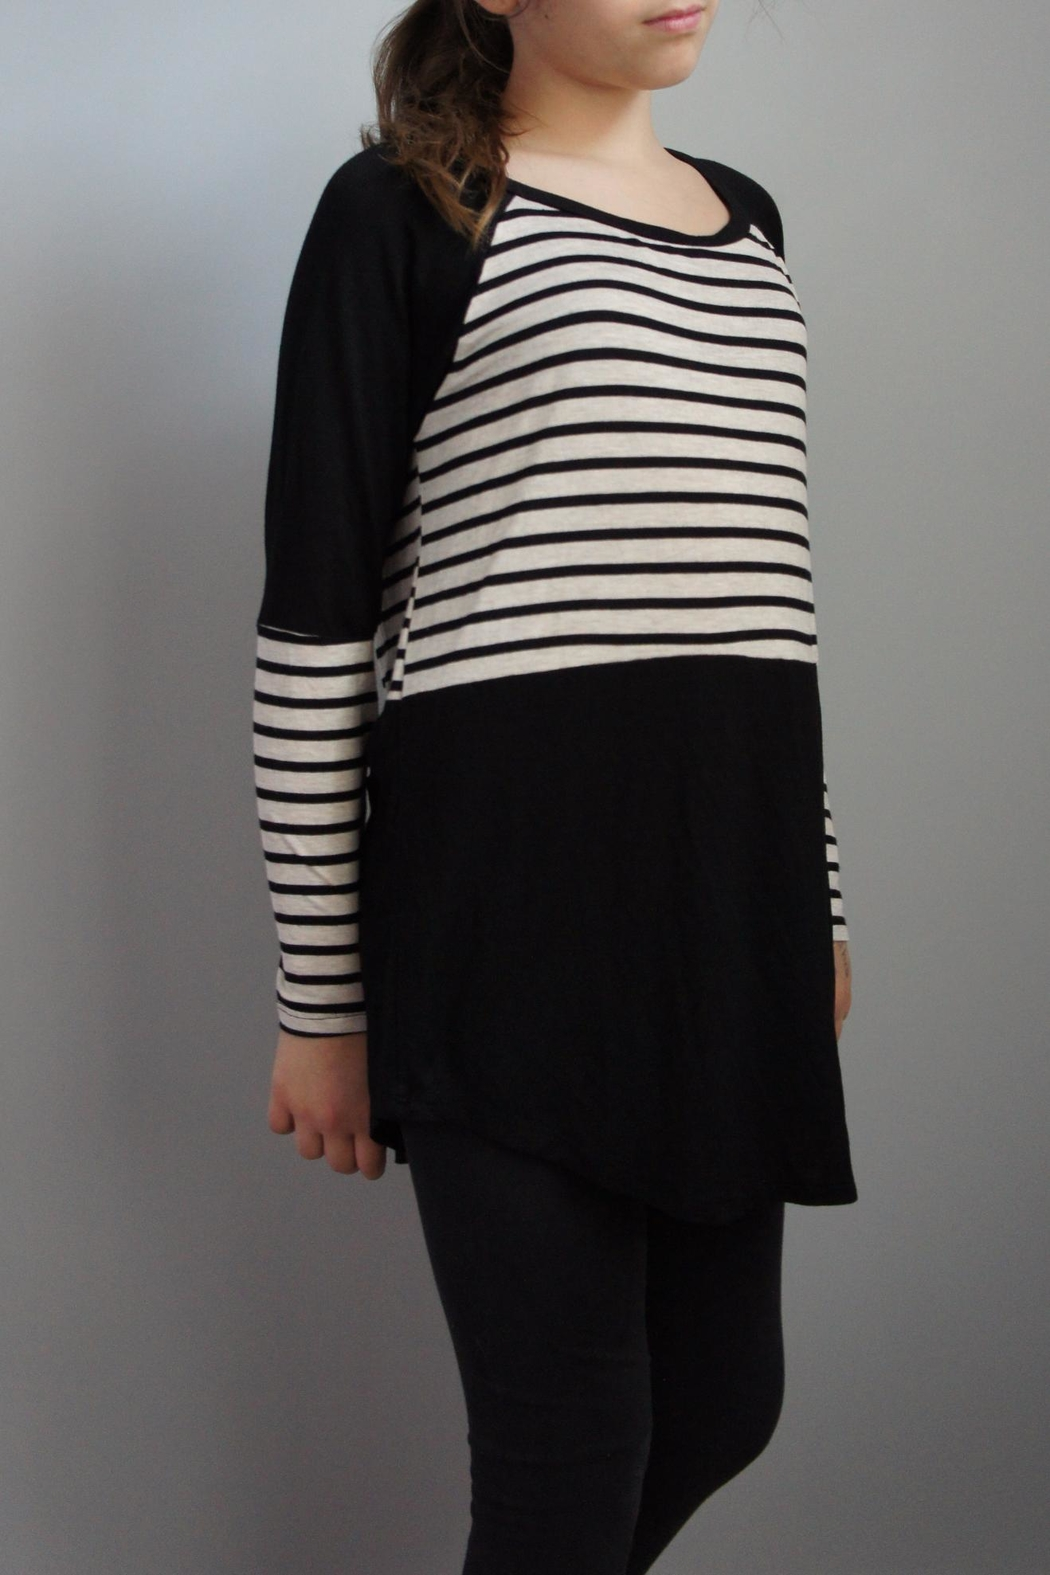 Again Collection Striped-Block Black Top - Main Image